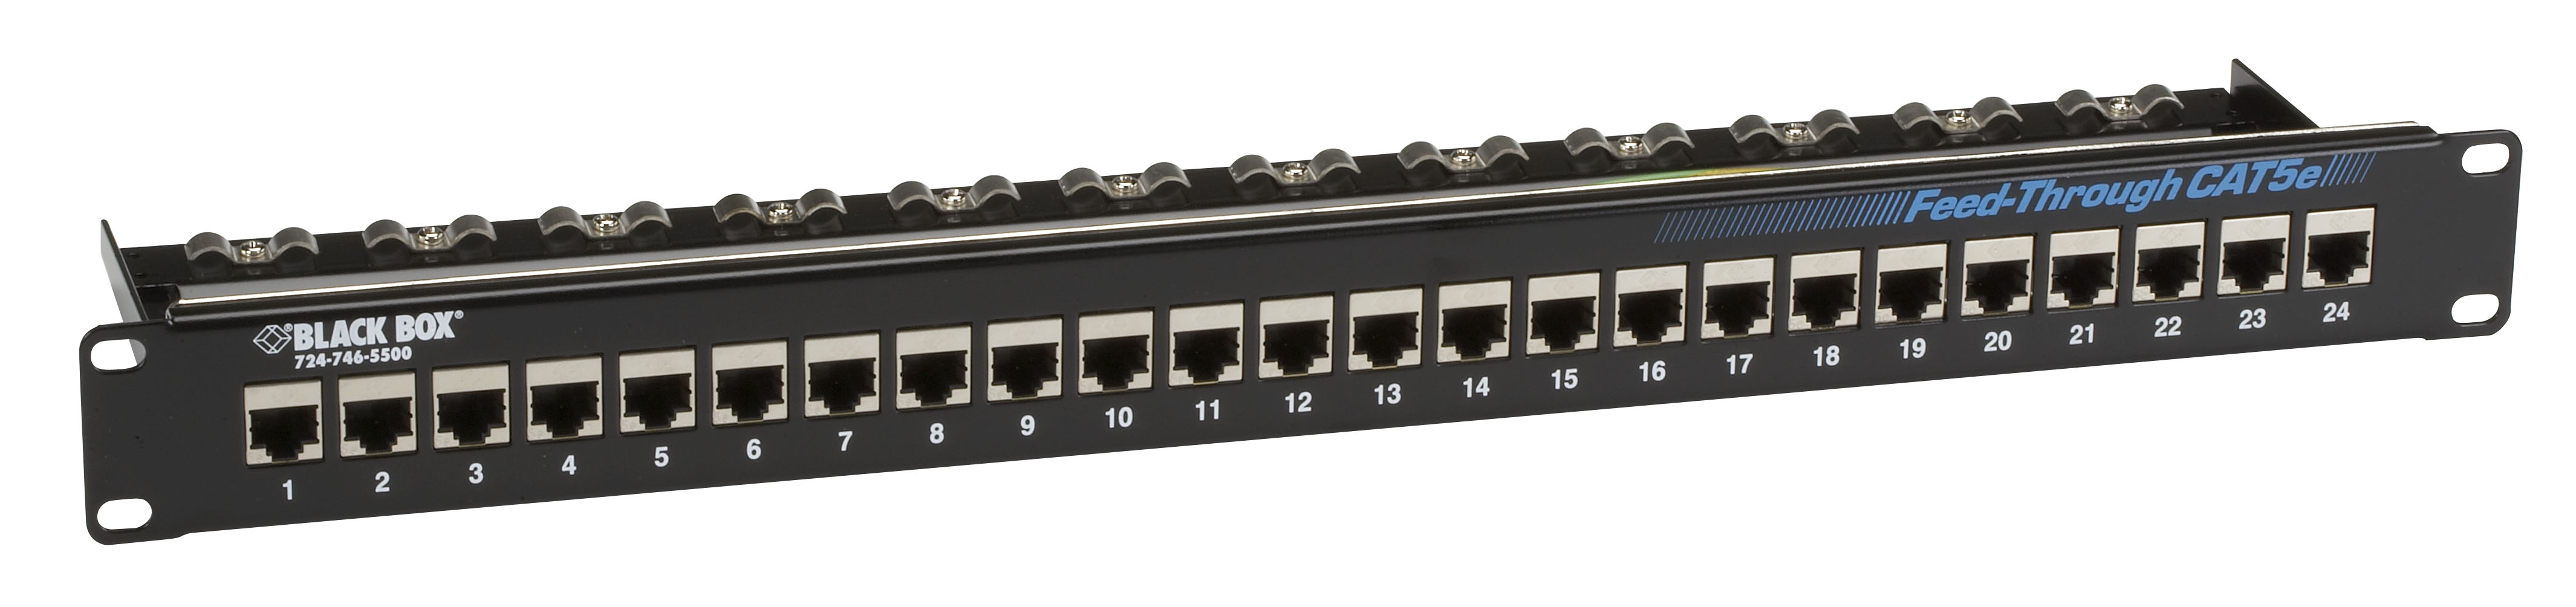 Feed Through Patch Panel Shielded 24 Port Black Box 568b Wiring Additional Product Image